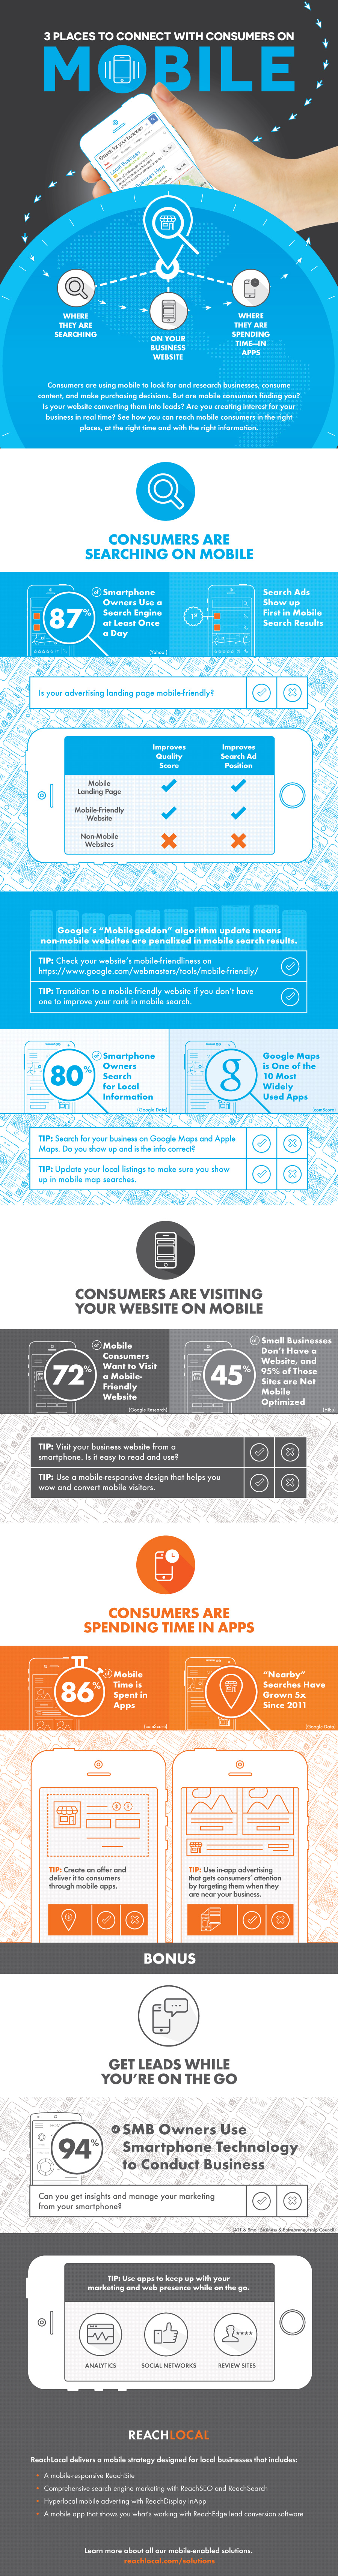 3 Places Small Businesses Can Connect with Consumers on Mobile